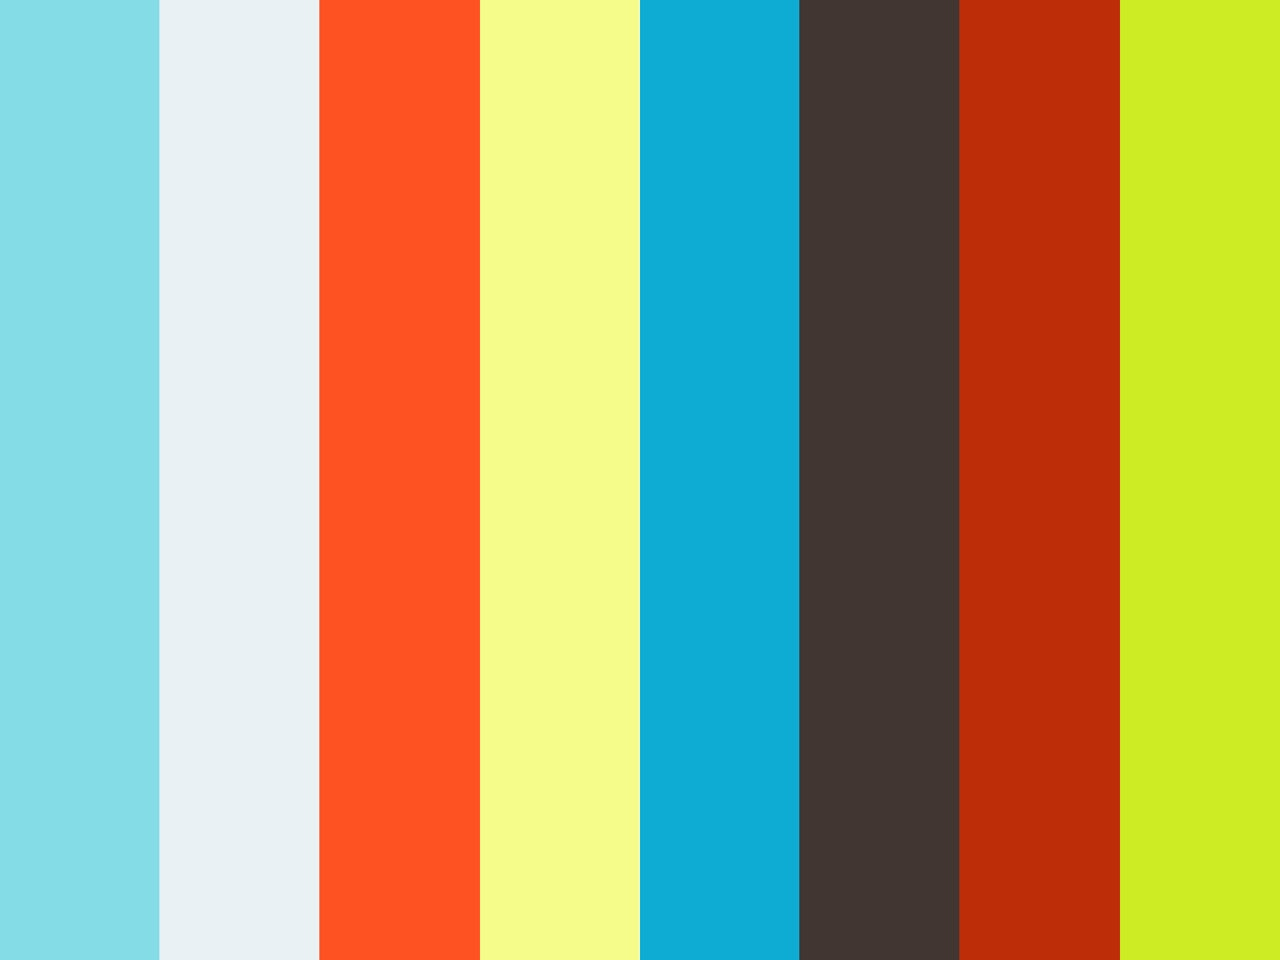 Color Meanings Alluring Colours And Their Meanings On Vimeo Inspiration